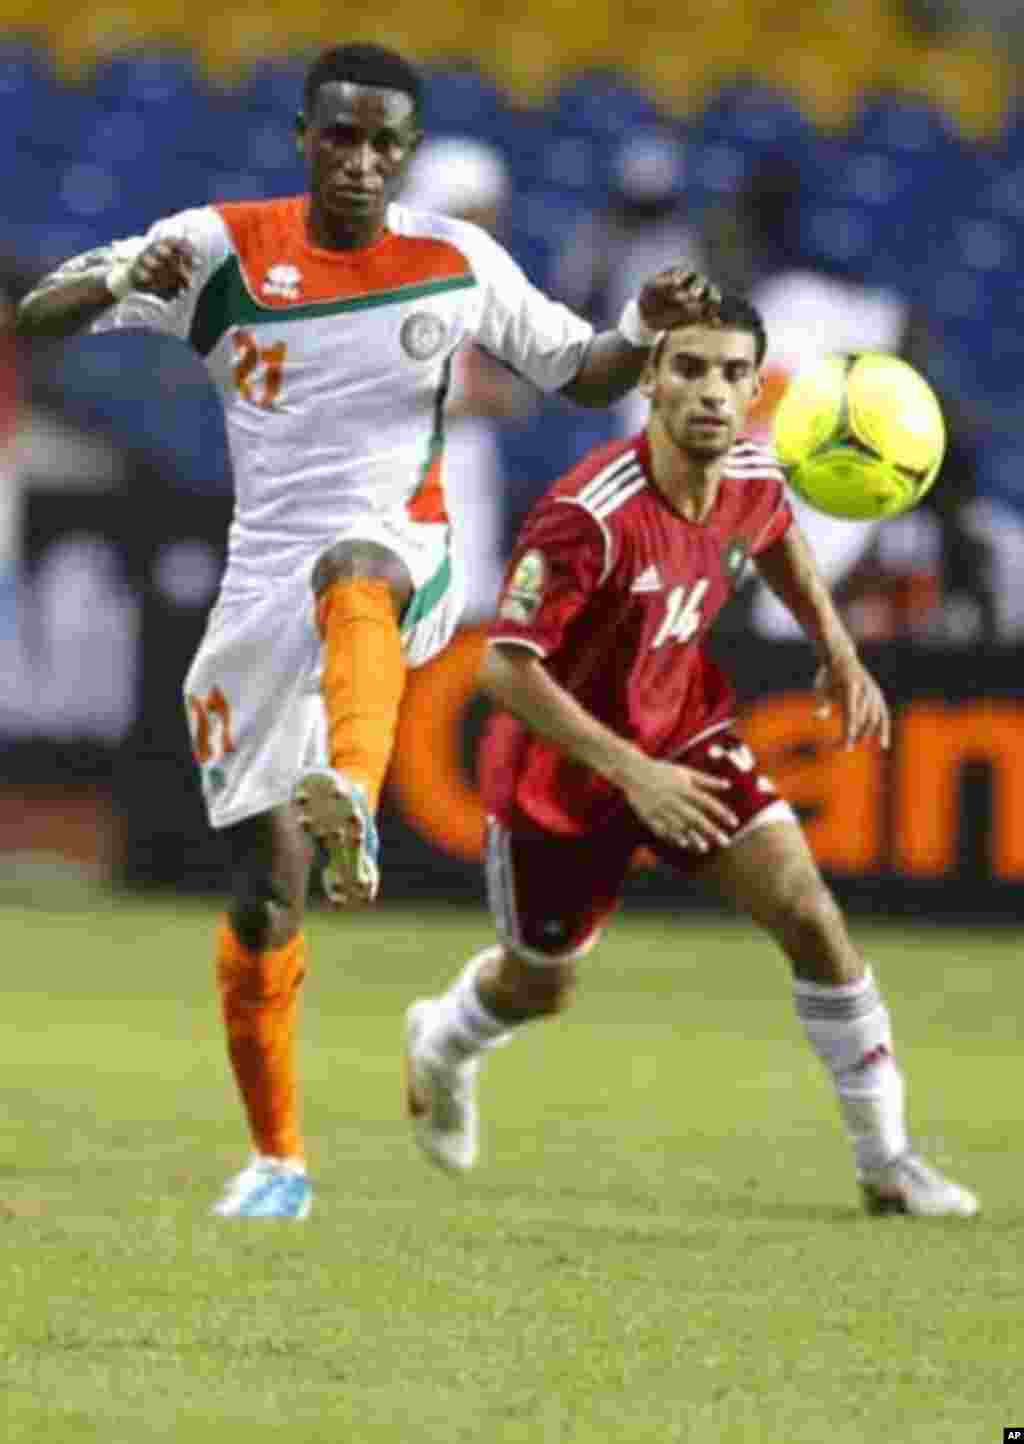 Niger's Seydou Ali Yacouba (21) plays against Morocco's Mbark Boussoufa (14) during their final African Cup of Nations Group C soccer match at the Stade De L'Amitie Stadium in Libreville, Gabon, January 31, 2012.